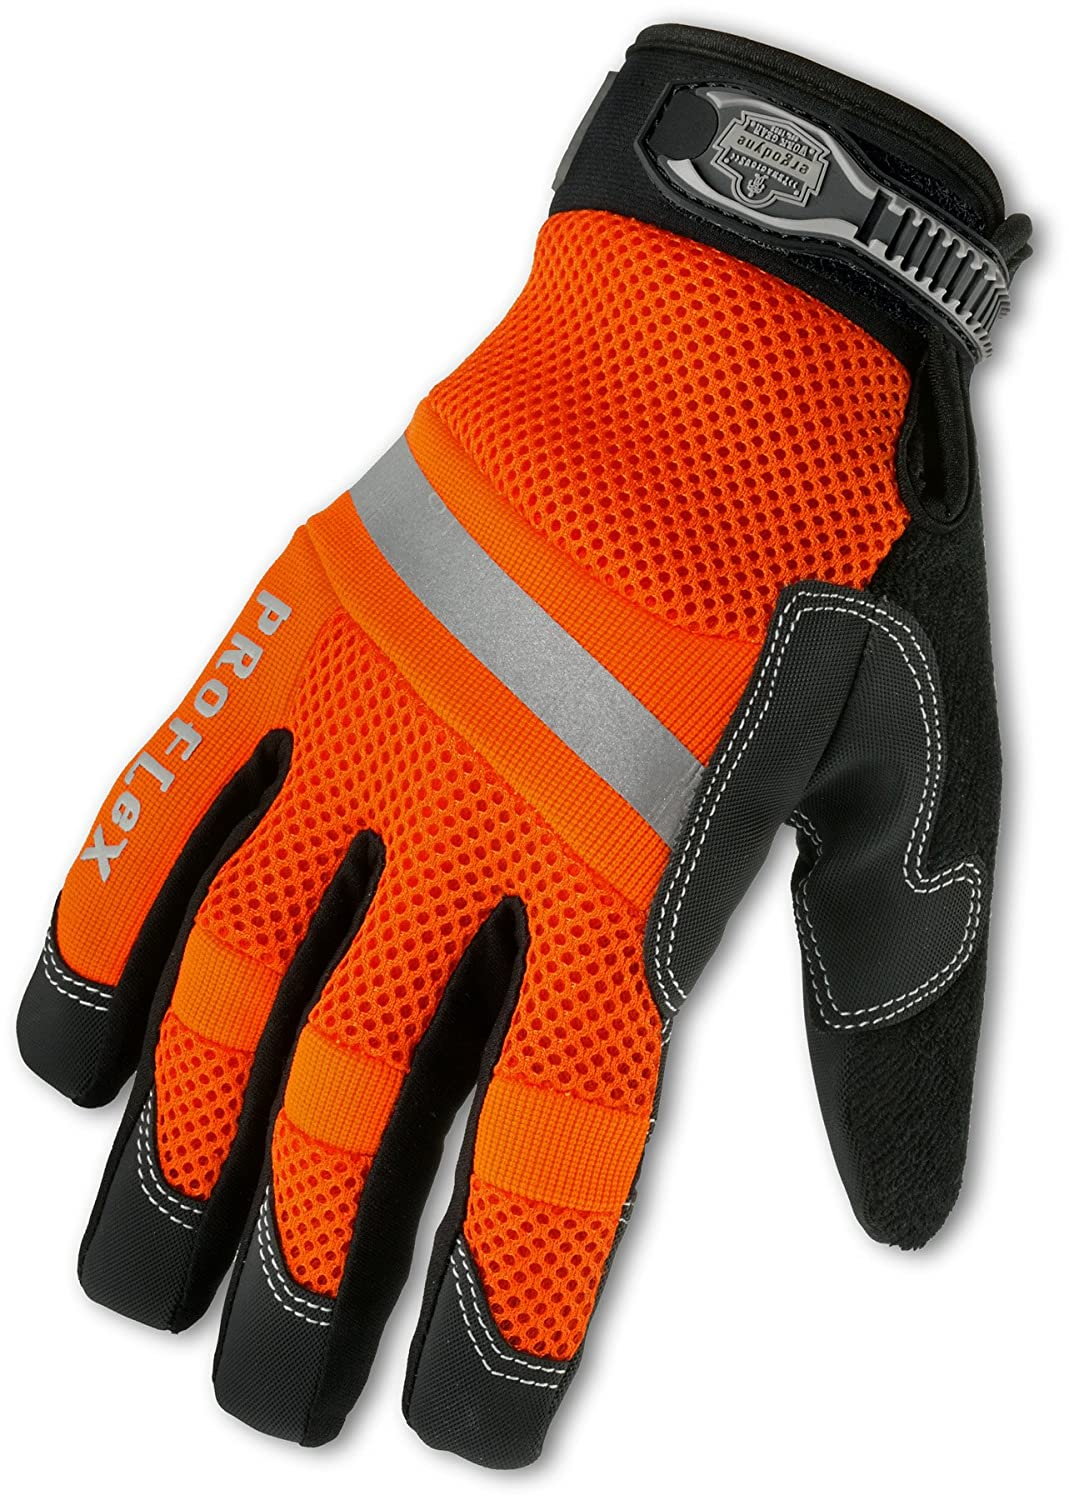 Ergodyne Proflex Hi-Visability Thermal Waterproof Glove